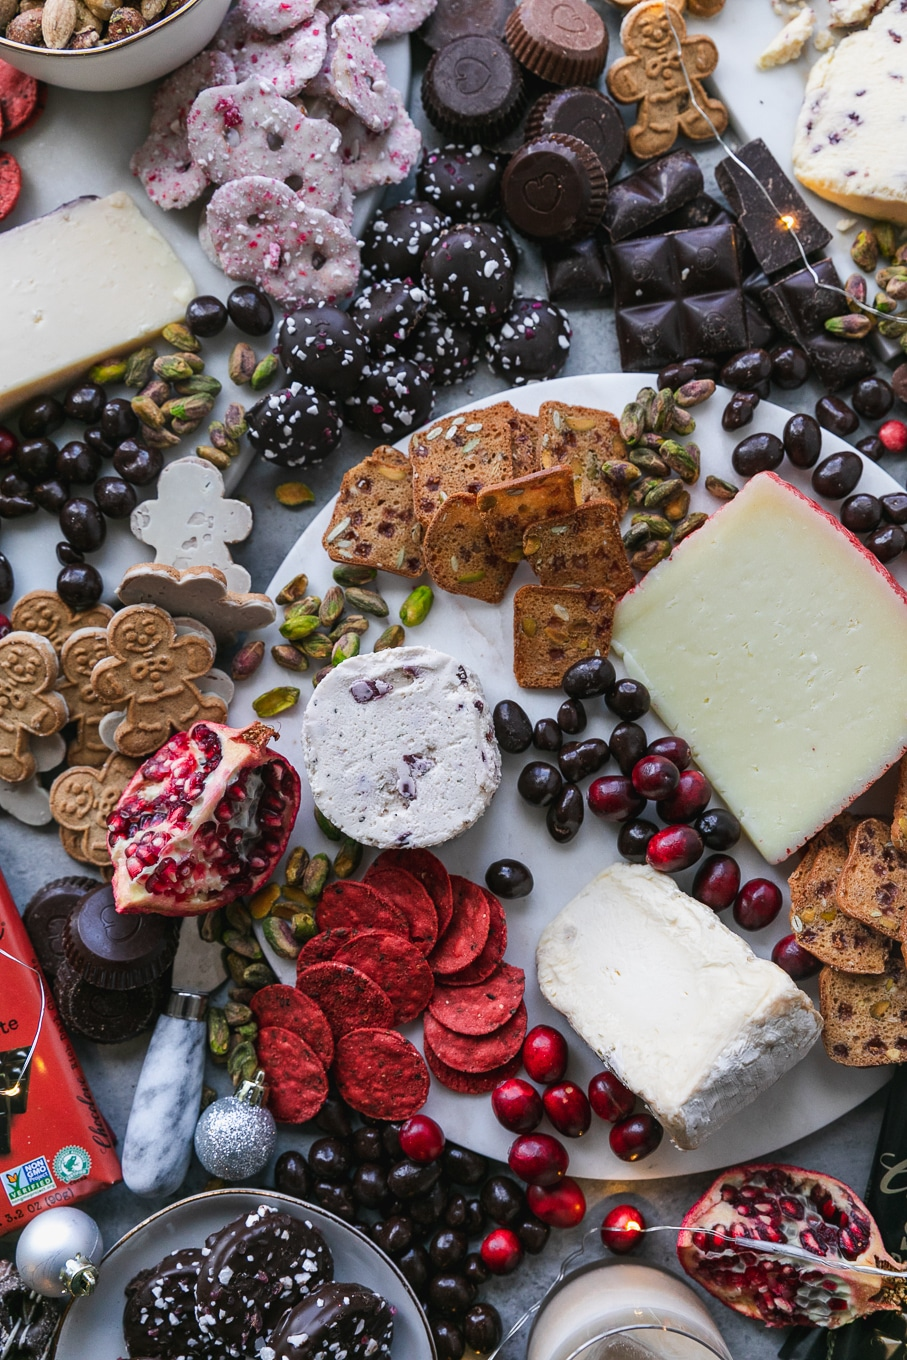 Overhead shot of a chocolate and cheeseboard filled with cookies, chocolate bars, crackers, cheeses, pomegranate, and assorted nuts